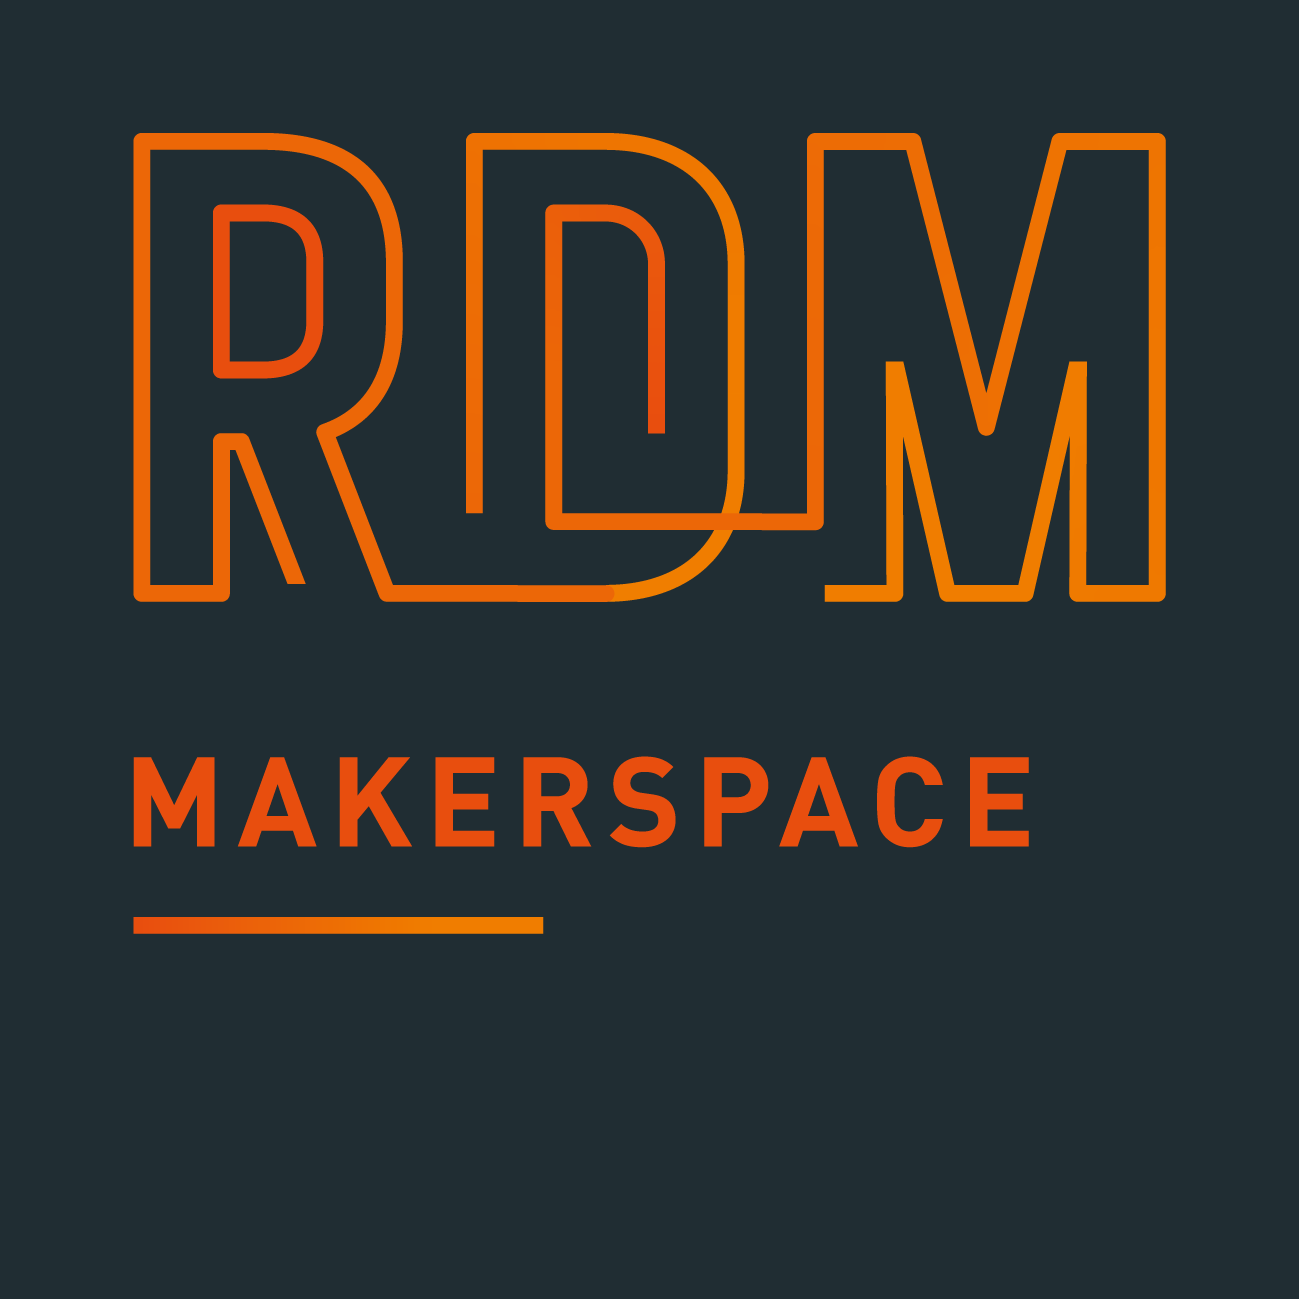 RDM-Makerspace.png